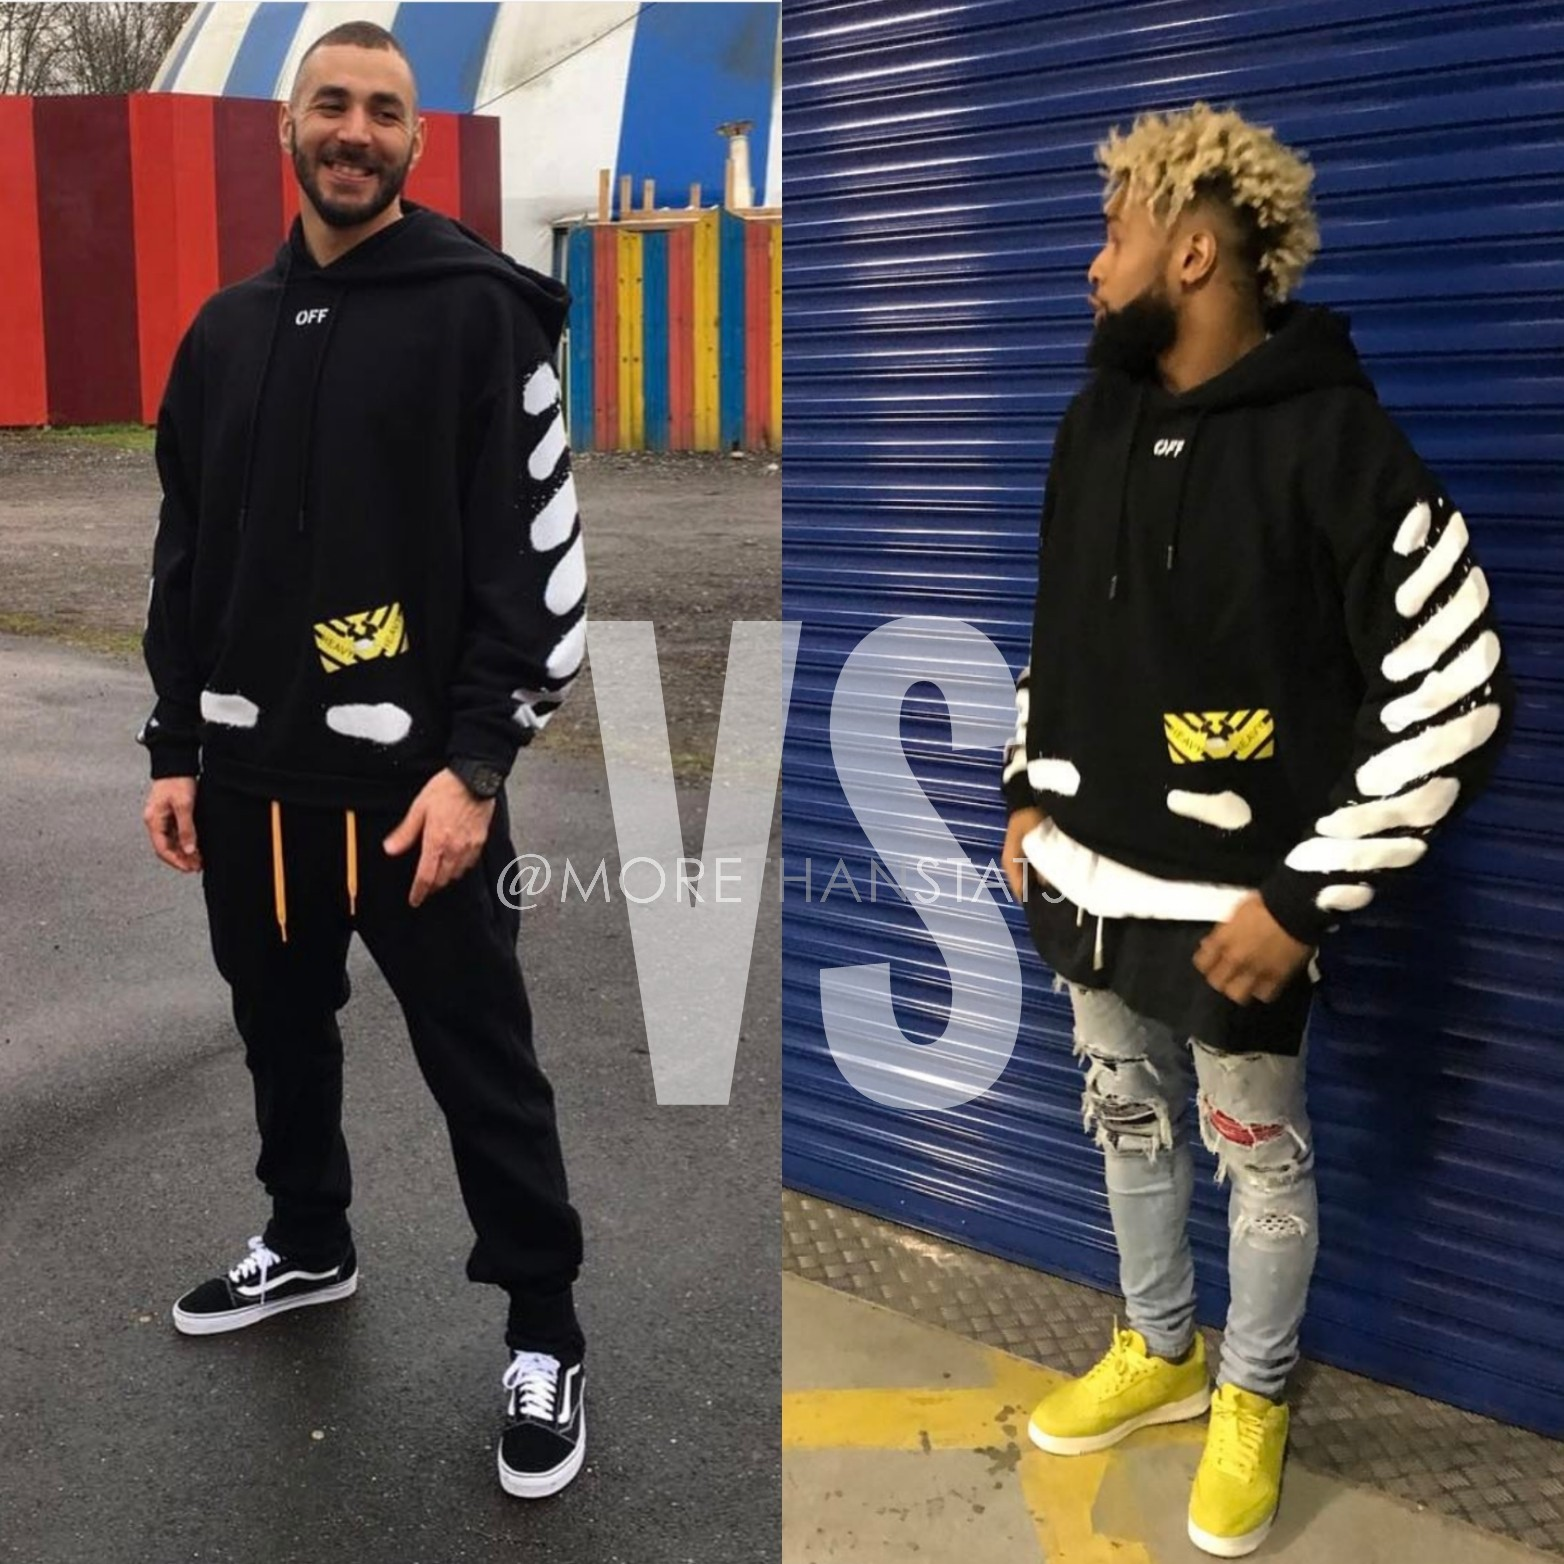 ad2f2659d3a7 Odell Beckham Jr. Wearing Off-White C O Virgil Abloh Black Diagonal Spray  Hoodie